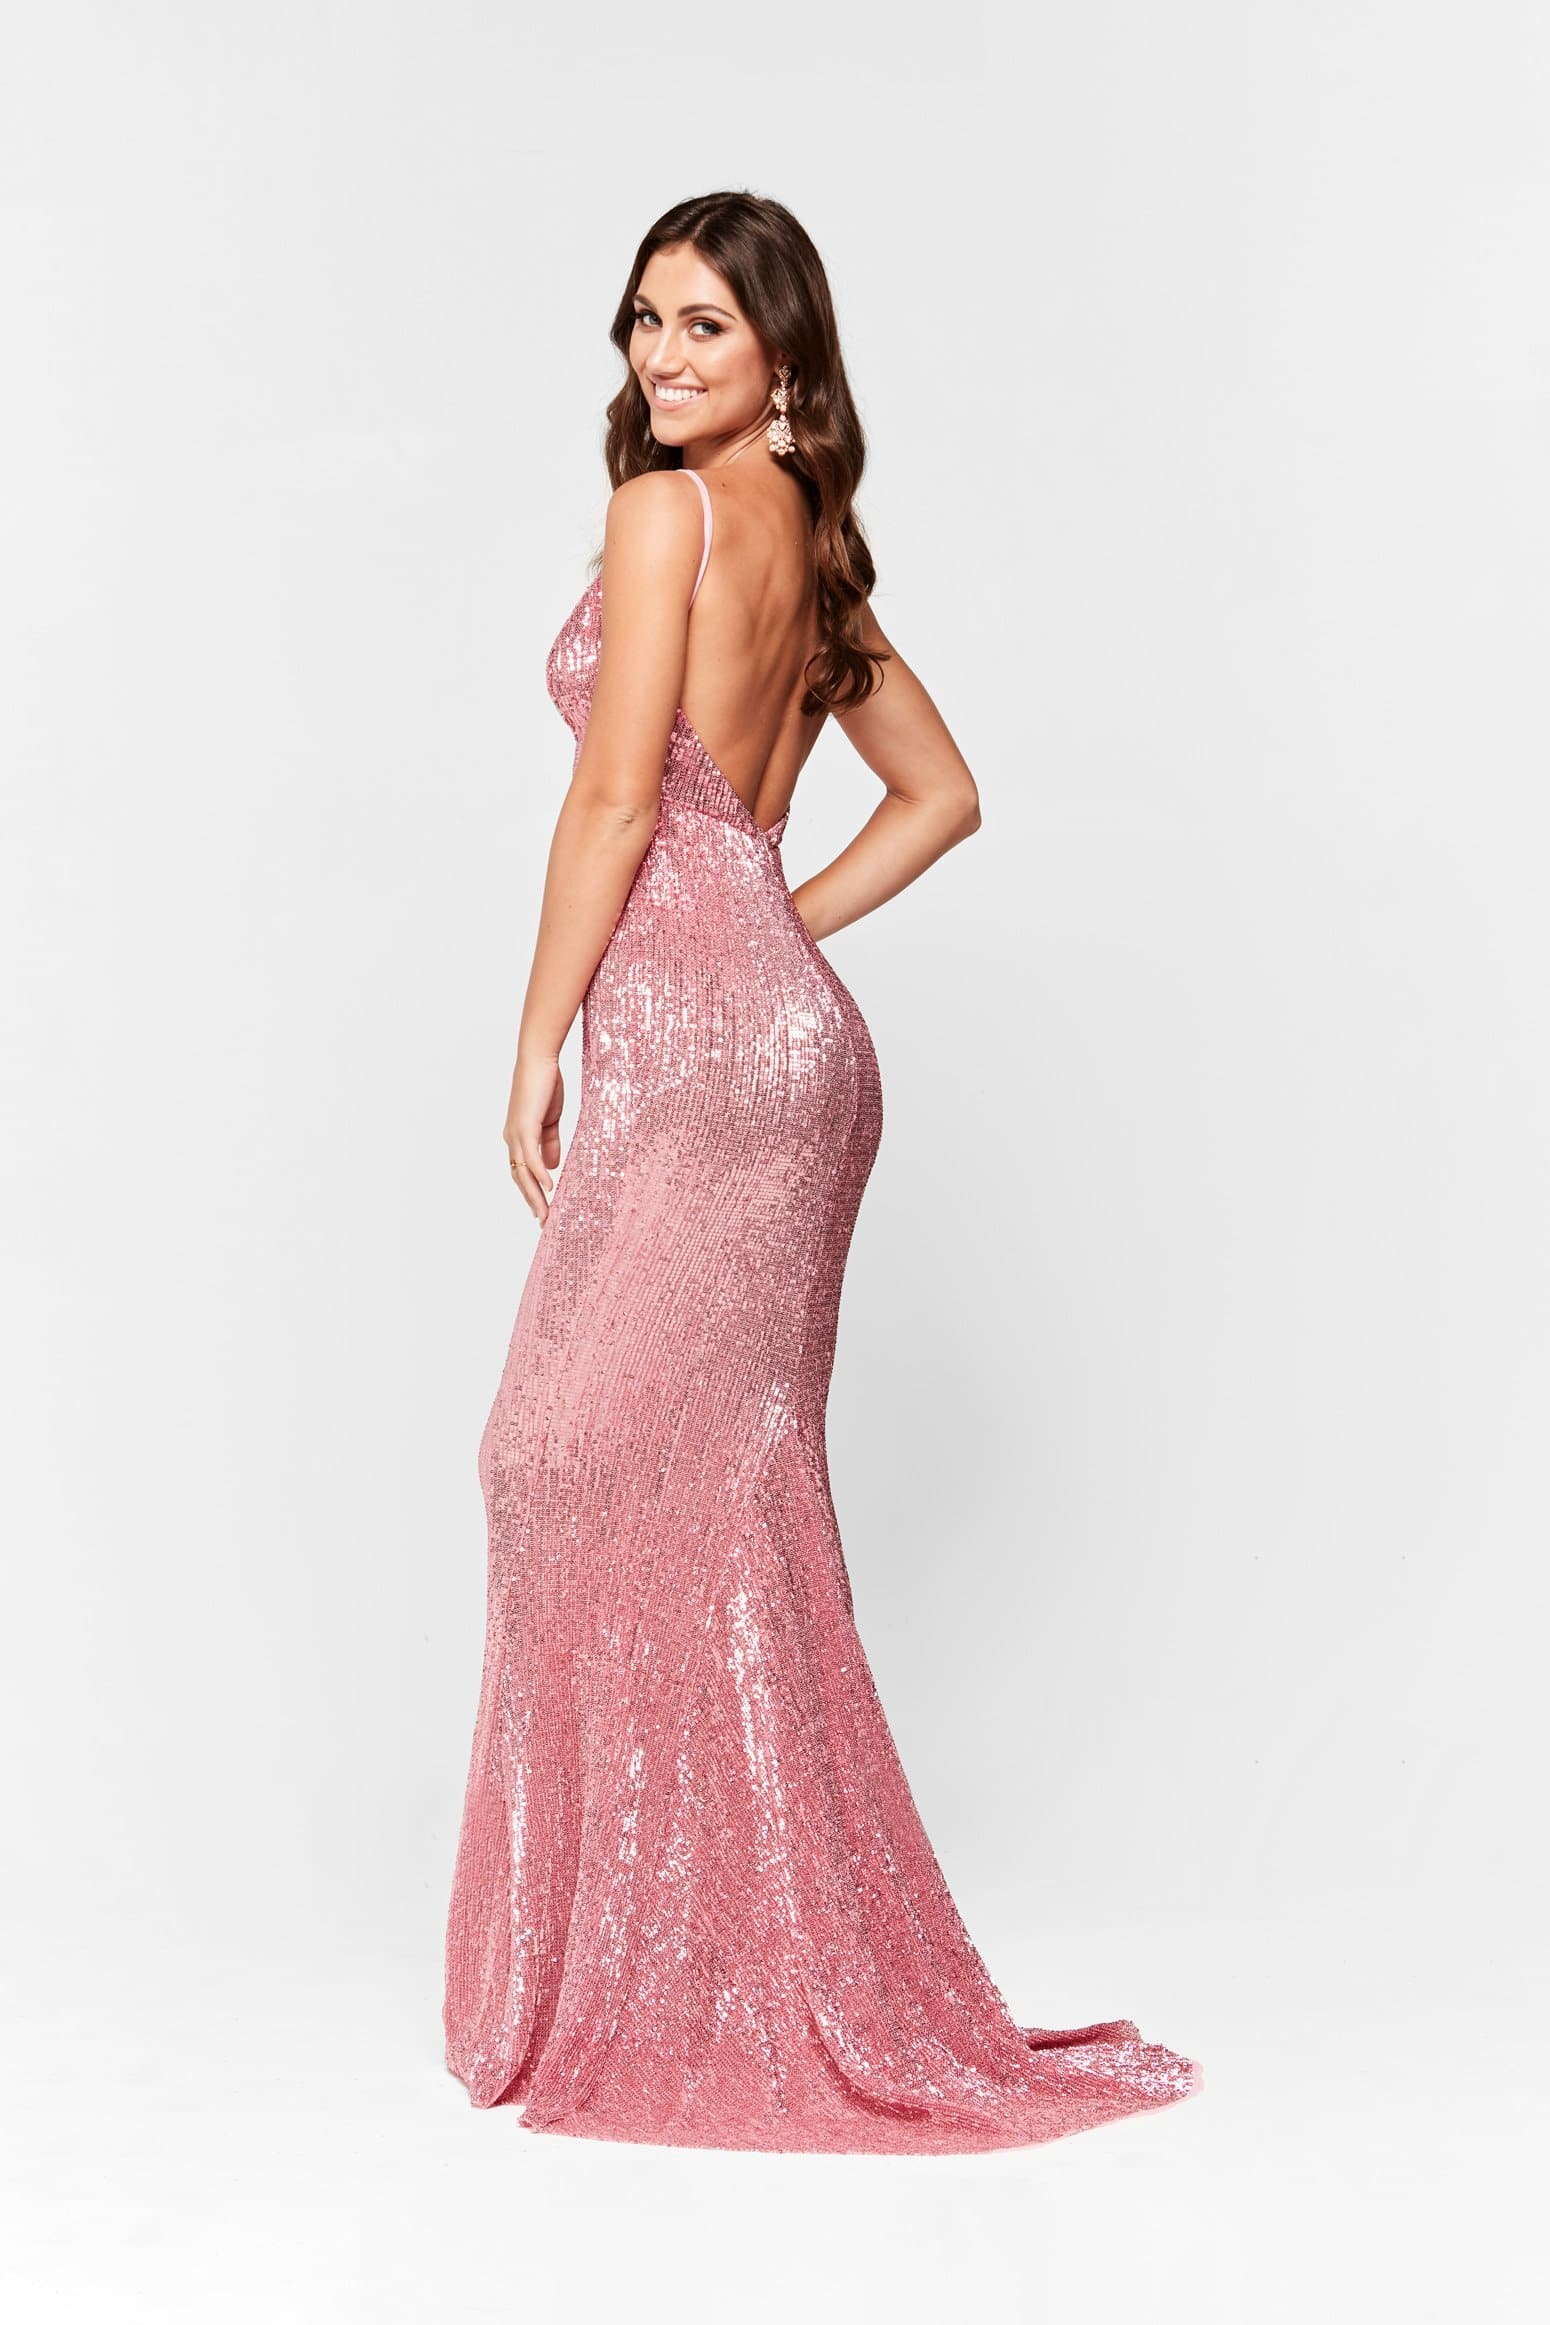 Cynthia Dress - Dusty Pink Sparkling V Neck Low Back Maxi Prom Gown ...